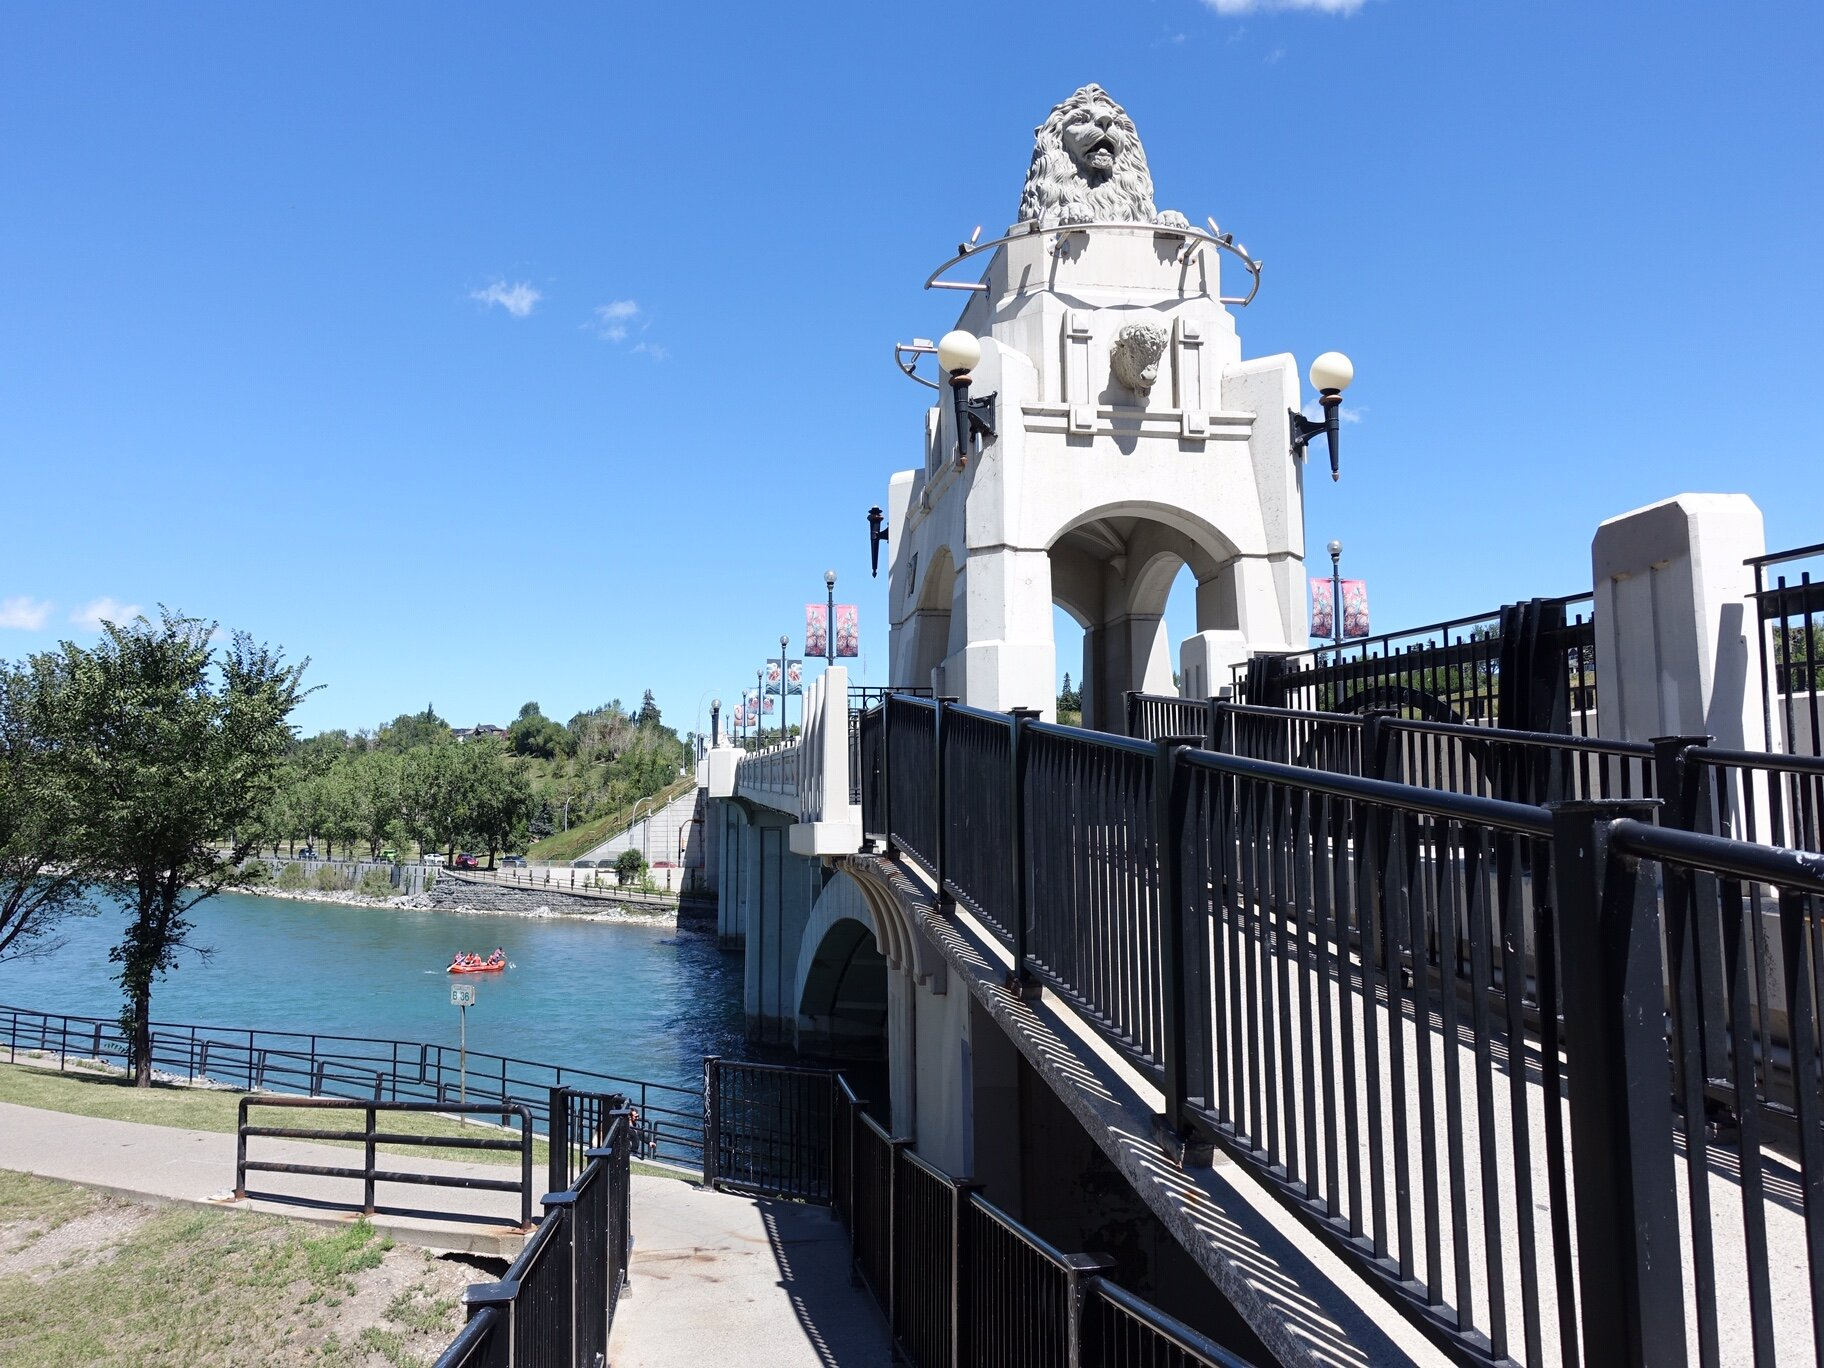 The iconic 1916 Centre Street Bridge with its lions modelled after the bronze lions at Trafalgar Square, London, and then to the popular Jack & Jean Leslie RiverWalk, which winds its way along the Bow River's edge to where it meets the Elbow River.